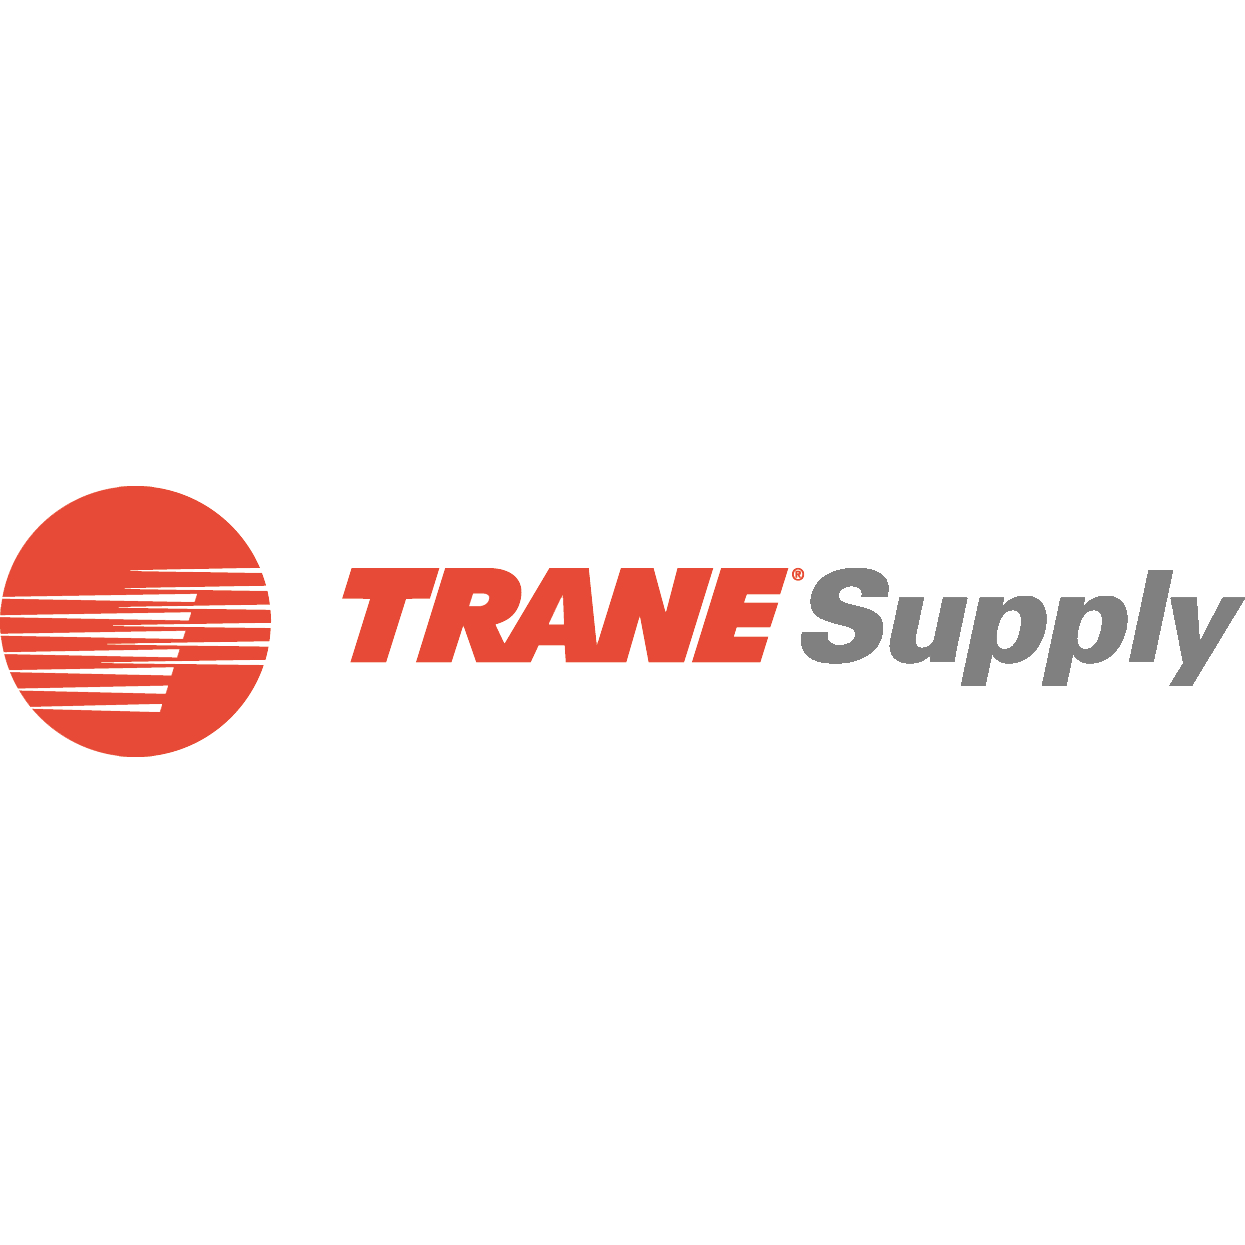 Trane Supply image 3